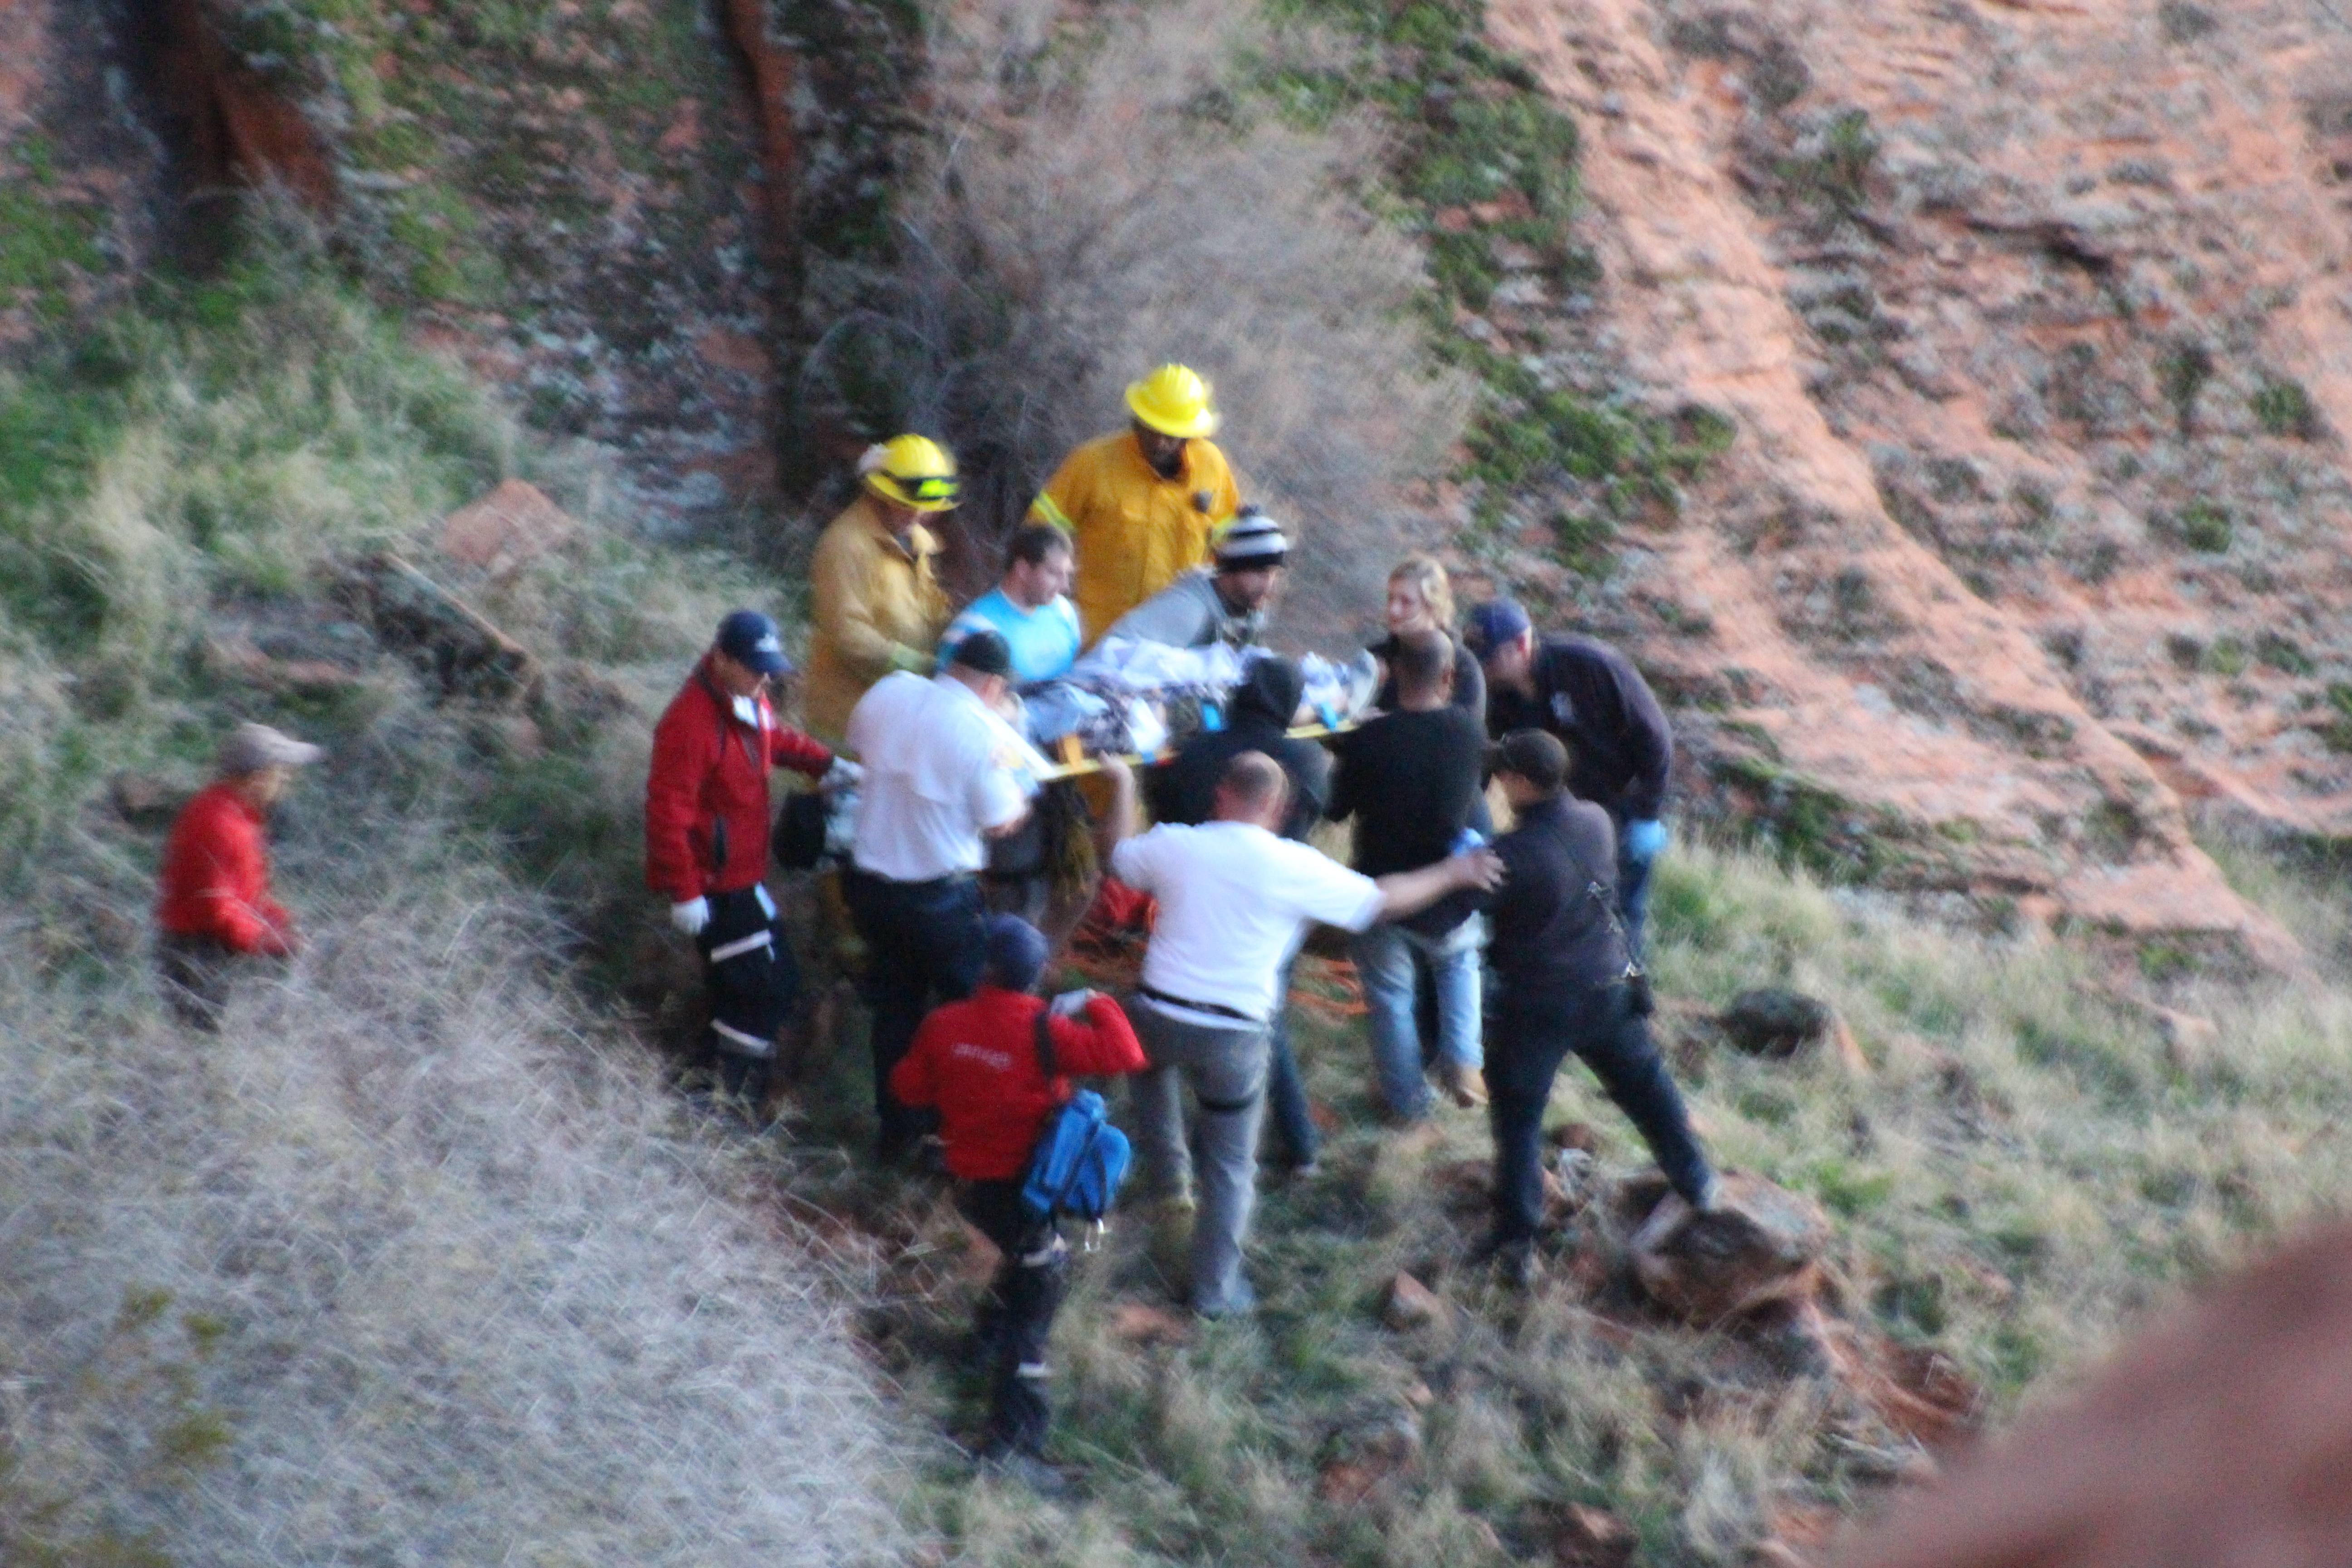 Rescuers transport a man who had fallen during a rappel to a Life Flight helicopter, Cougar Cliffs Climbing Area, St. George, Utah, Dec. 29, 2016 | Photo by Joseph Witham, St. George News